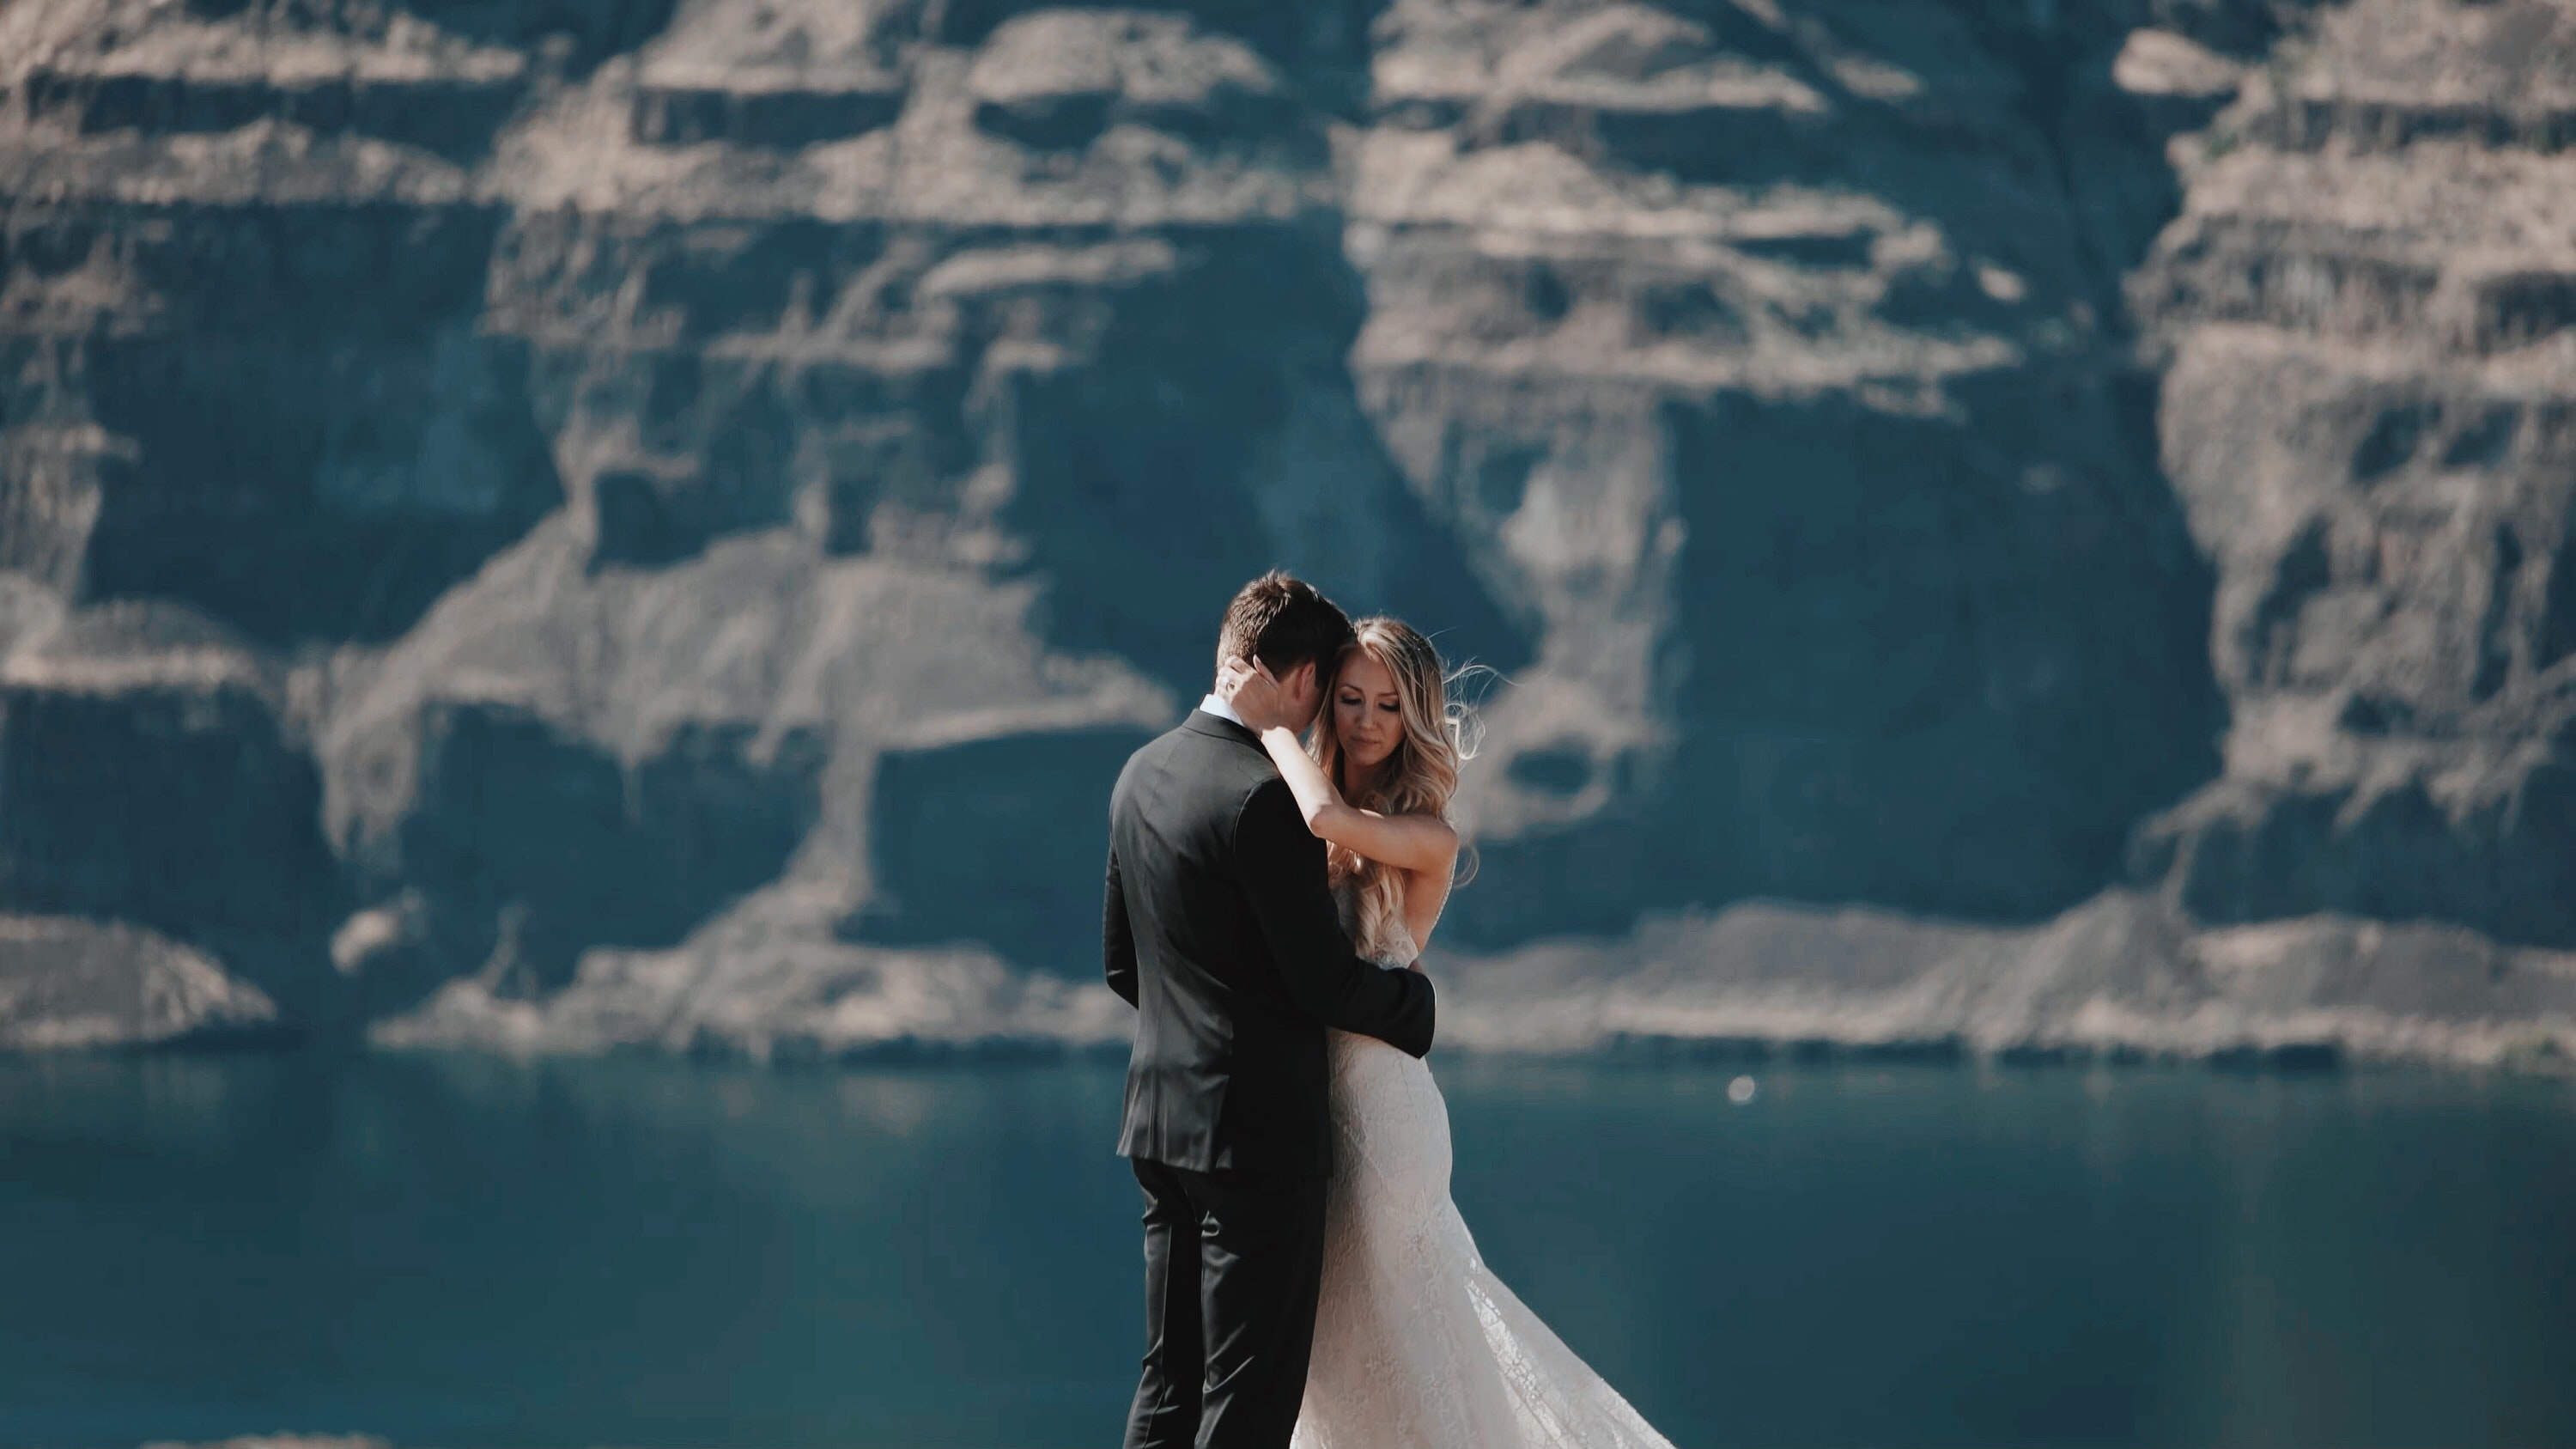 A bride and groom embrace on a vista overlooking a body of water and cliff